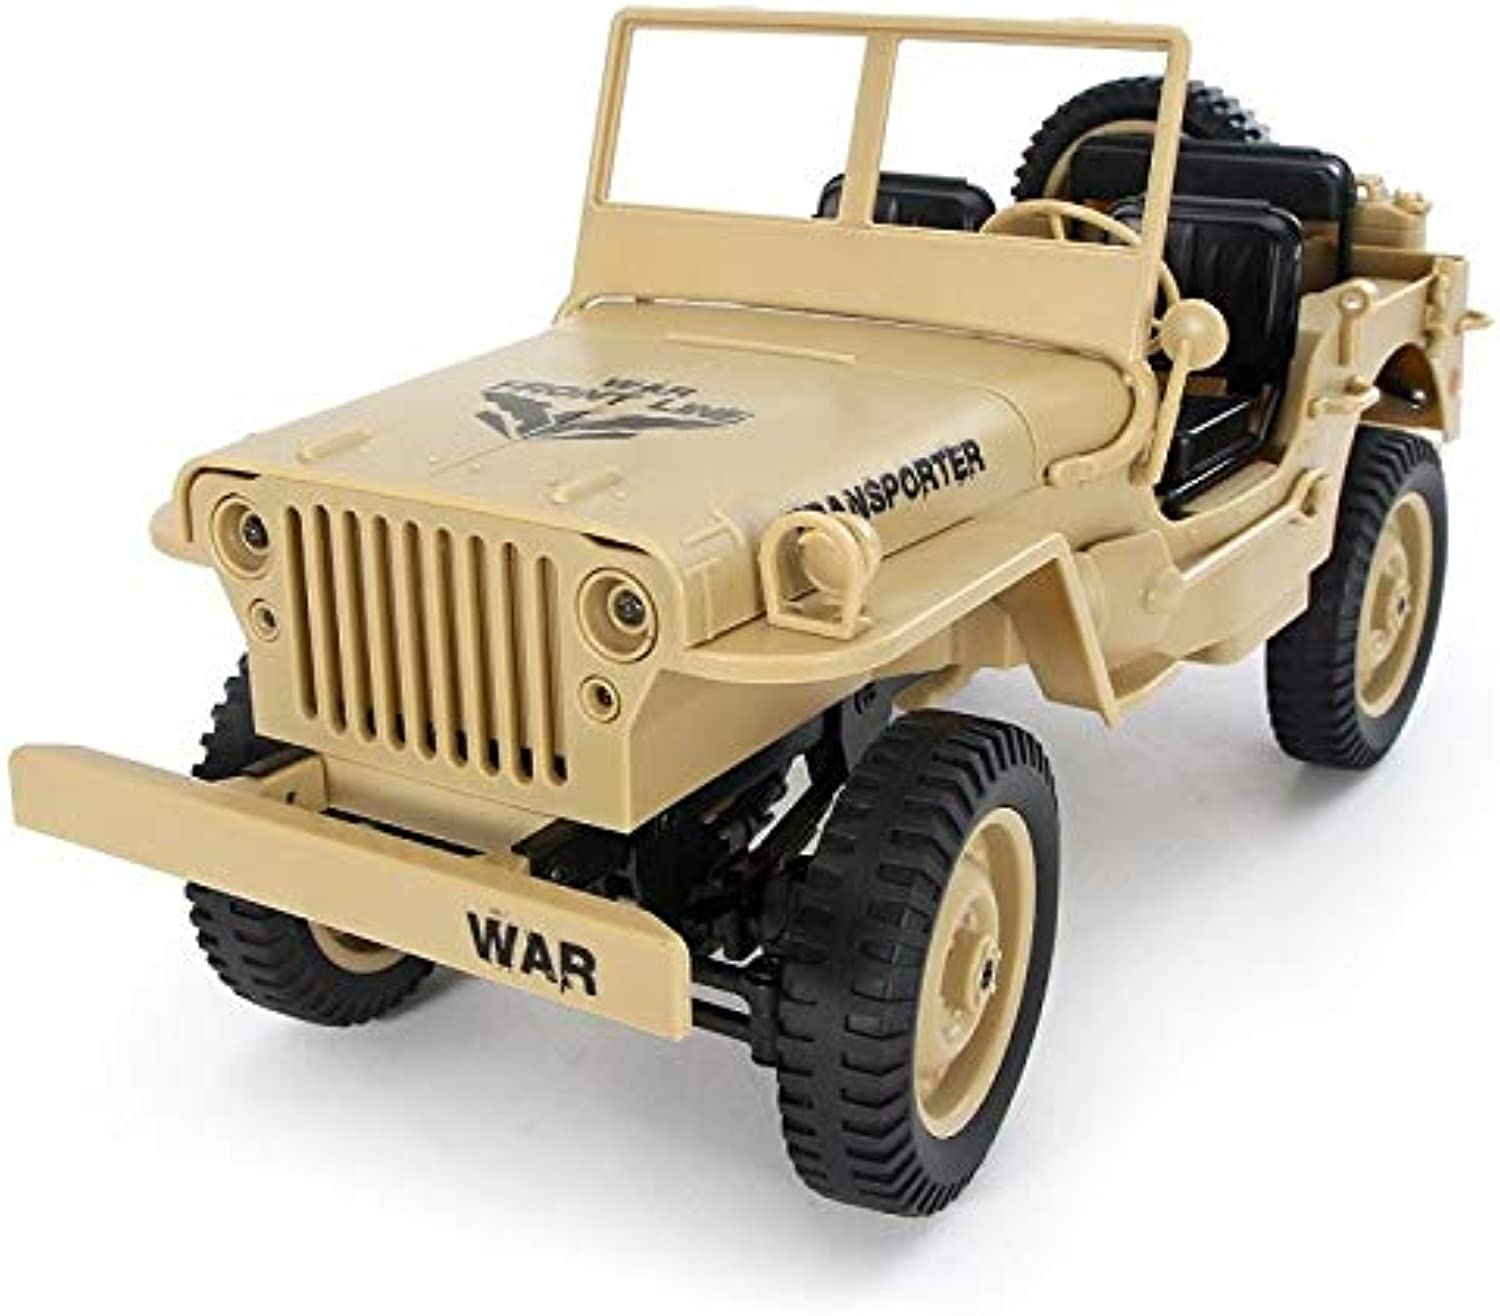 Generic JJRC Q65 1 10 RC Car 2.4G 4WD Congreenible Remote Control car Light Jeep FourWheel Drive OffRoad Military Truck Climb car Toy Yellow 1 Battery